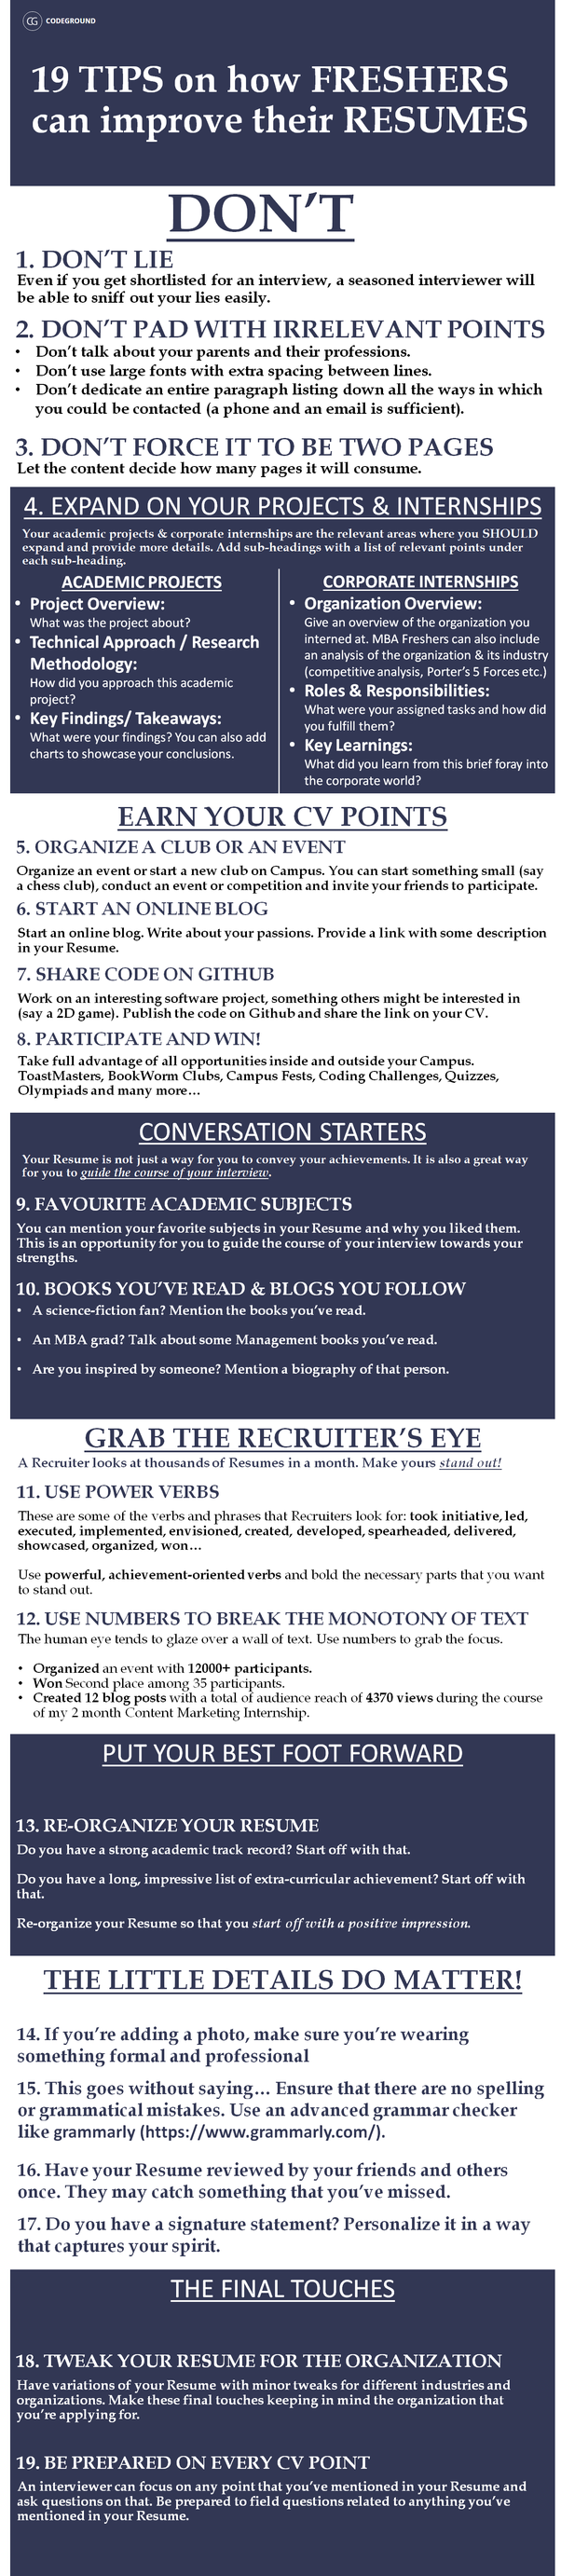 How To Make A Good Resume As A Fresher Quora